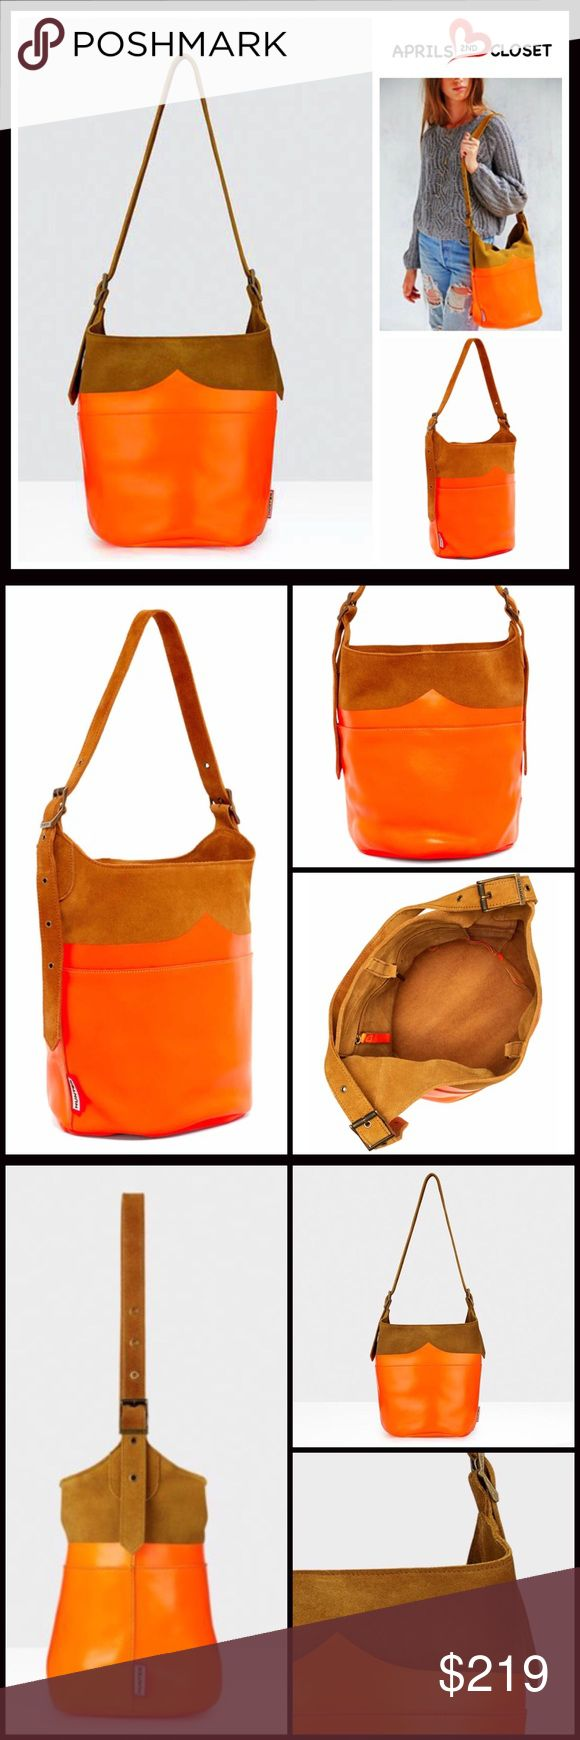 """HUNTER Original Suede Leather Bucket Bag 💟NEW WITH TAGS💟  HUNTER Original Suede Leather Bucket Bag  * Exterior features tonal color-block leather / suede construction   * Single adjustable shoulder handle; 9"""" - 11"""" drop; Interior hanging zip pocket  * Lobster clasp top closure  * Approx. 12.5""""H x 15""""W x 9 3/8"""" D  * Hunter logo detail; Dustbag included  * A firm structure bottom Material- Suede Color-Neon orange, tan  🚫No Trades🚫 ✅ Offers Considered*/Bundle Discounts✅ *Please use the…"""